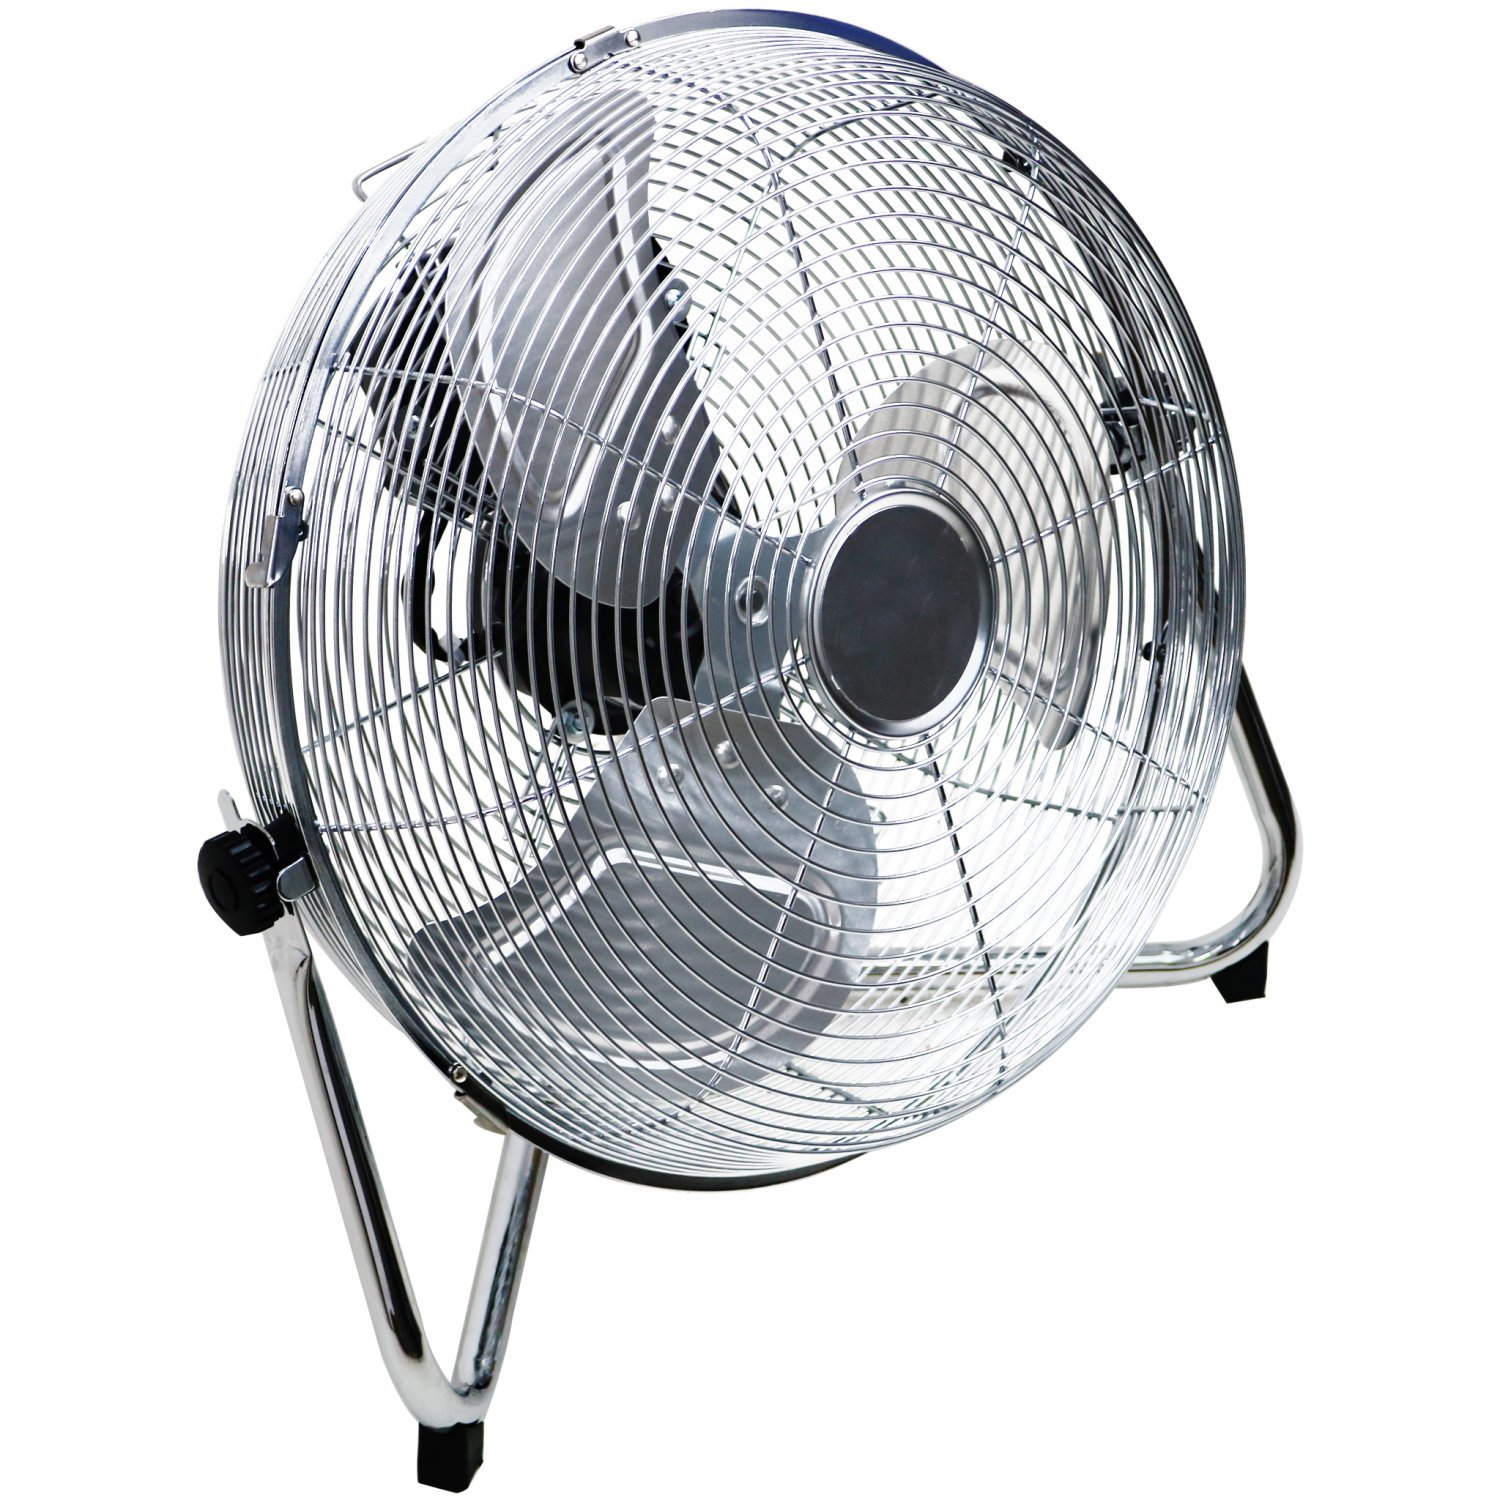 """(RL122) 14"""" Inch Chrome 3 Speed Floor Standing Gym Fan Hydroponic Stay cool this year with t... - Image 2 of 2"""